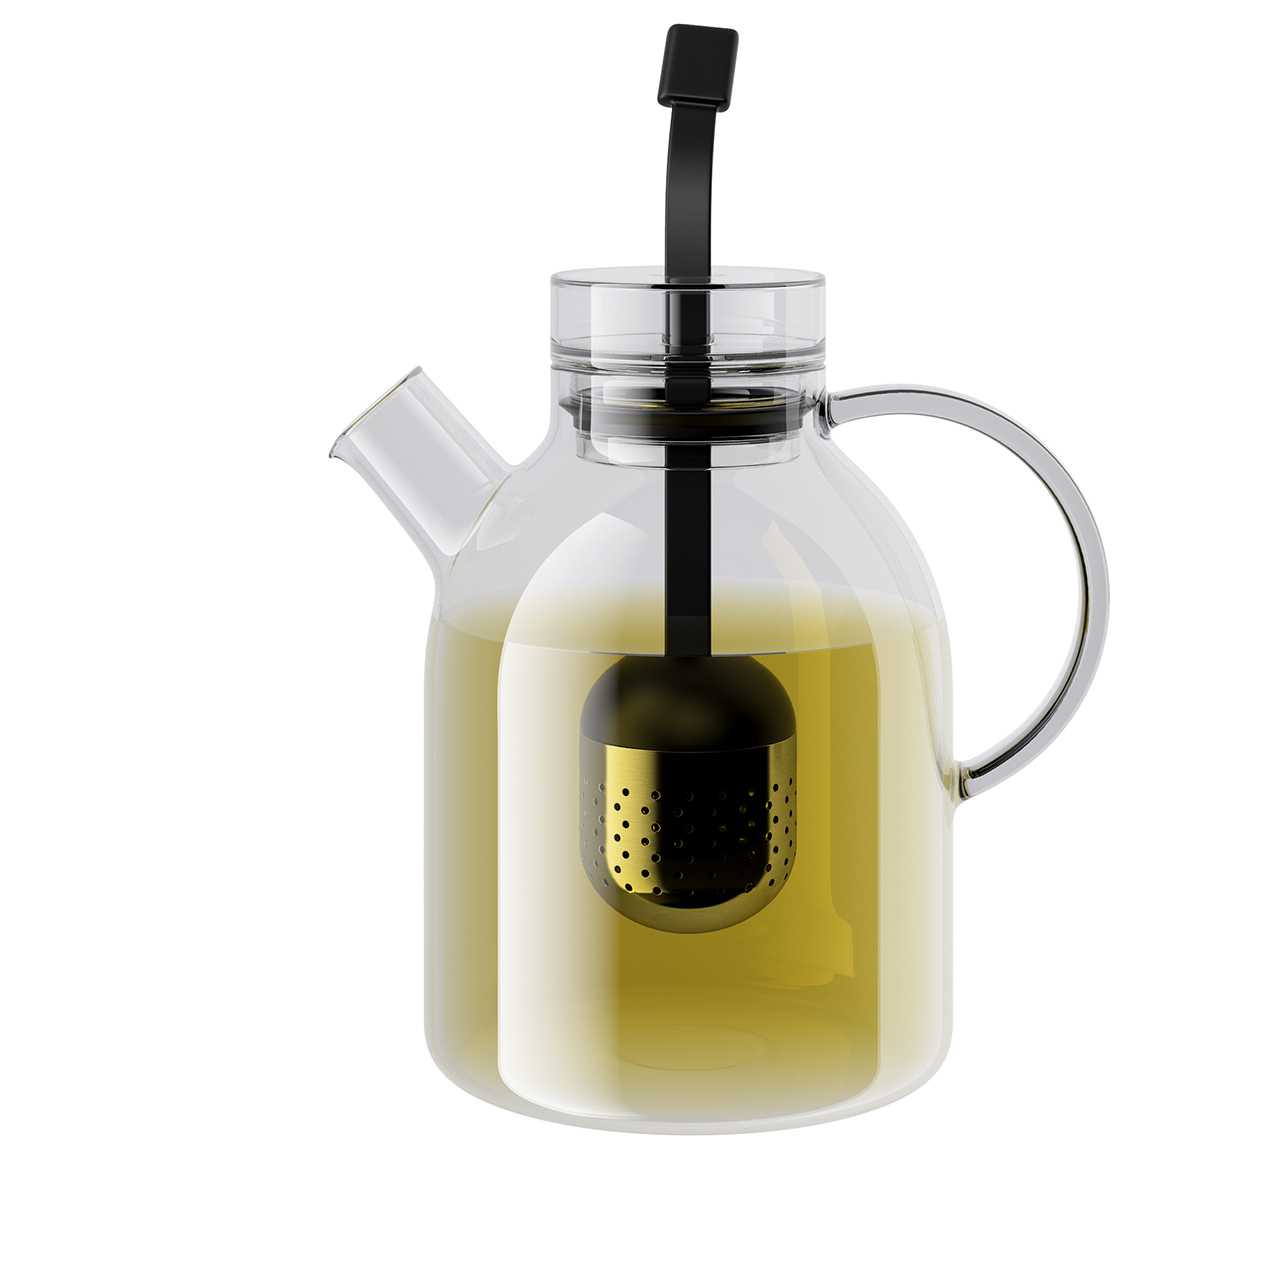 Kettle Teapot 1,5 l by Menu